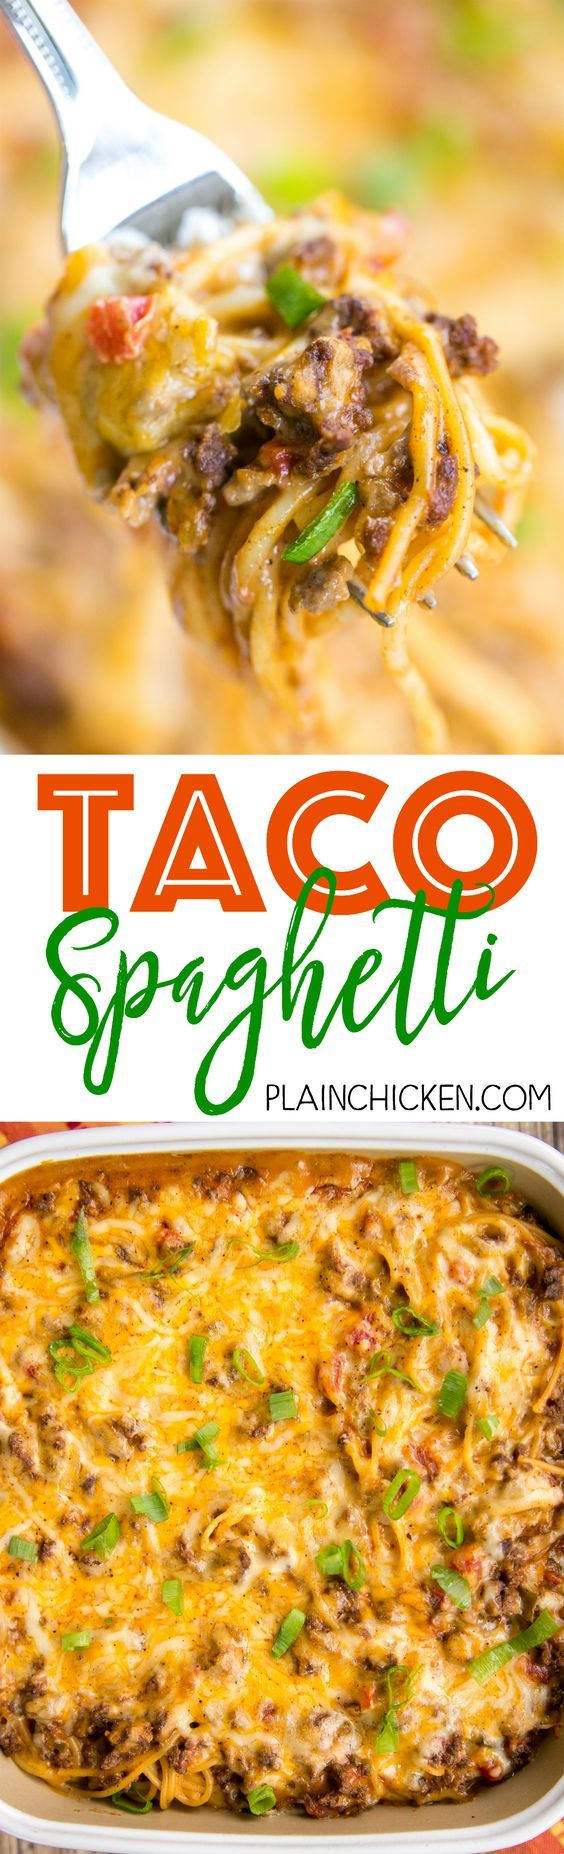 Taco Spaghetti - THE BEST! We ate this three days in a row! Ready in 30 minutes!! Taco meat velveeta diced tomatoes with green chilies spaghetti cream of chicken soup and cheddar cheese. CRAZY good! Everyone cleaned their plates - even our picky eaters! Our favorite Mexican casserole!